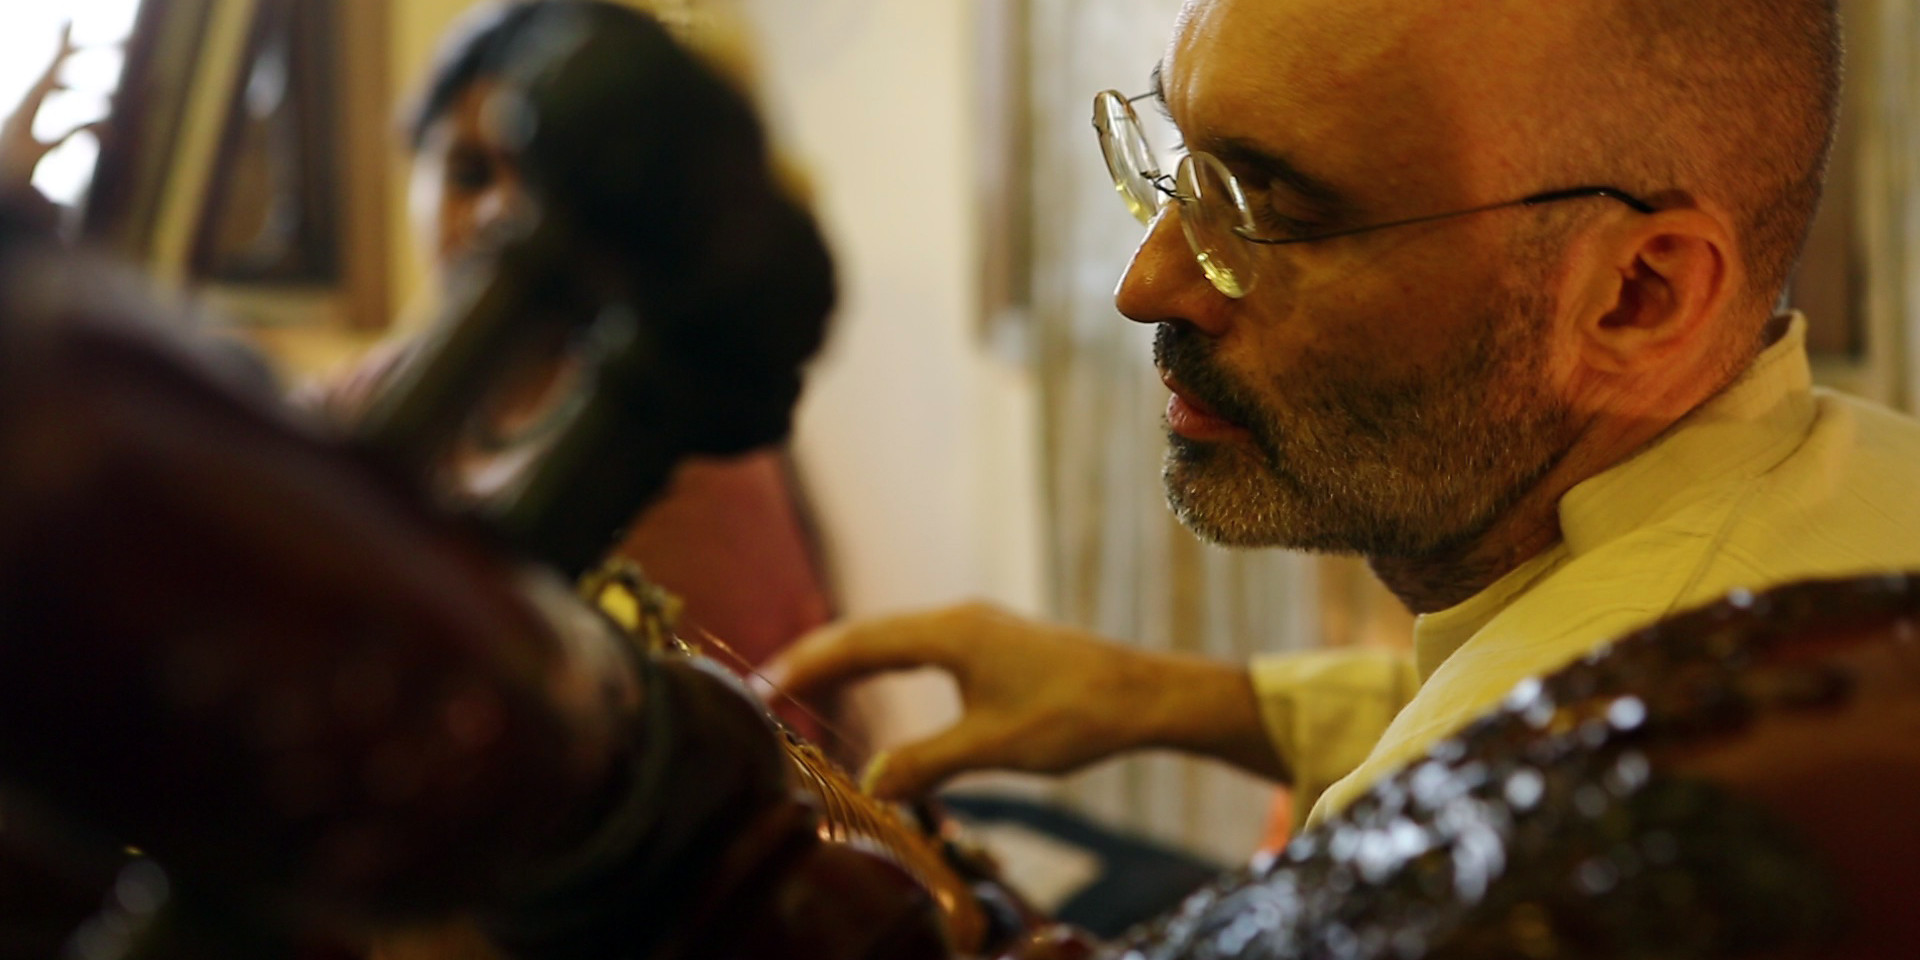 Carsten Wicke with Rudra Veena at Shooting for the Rudra Veena Documentary by Rajesh Bhatia